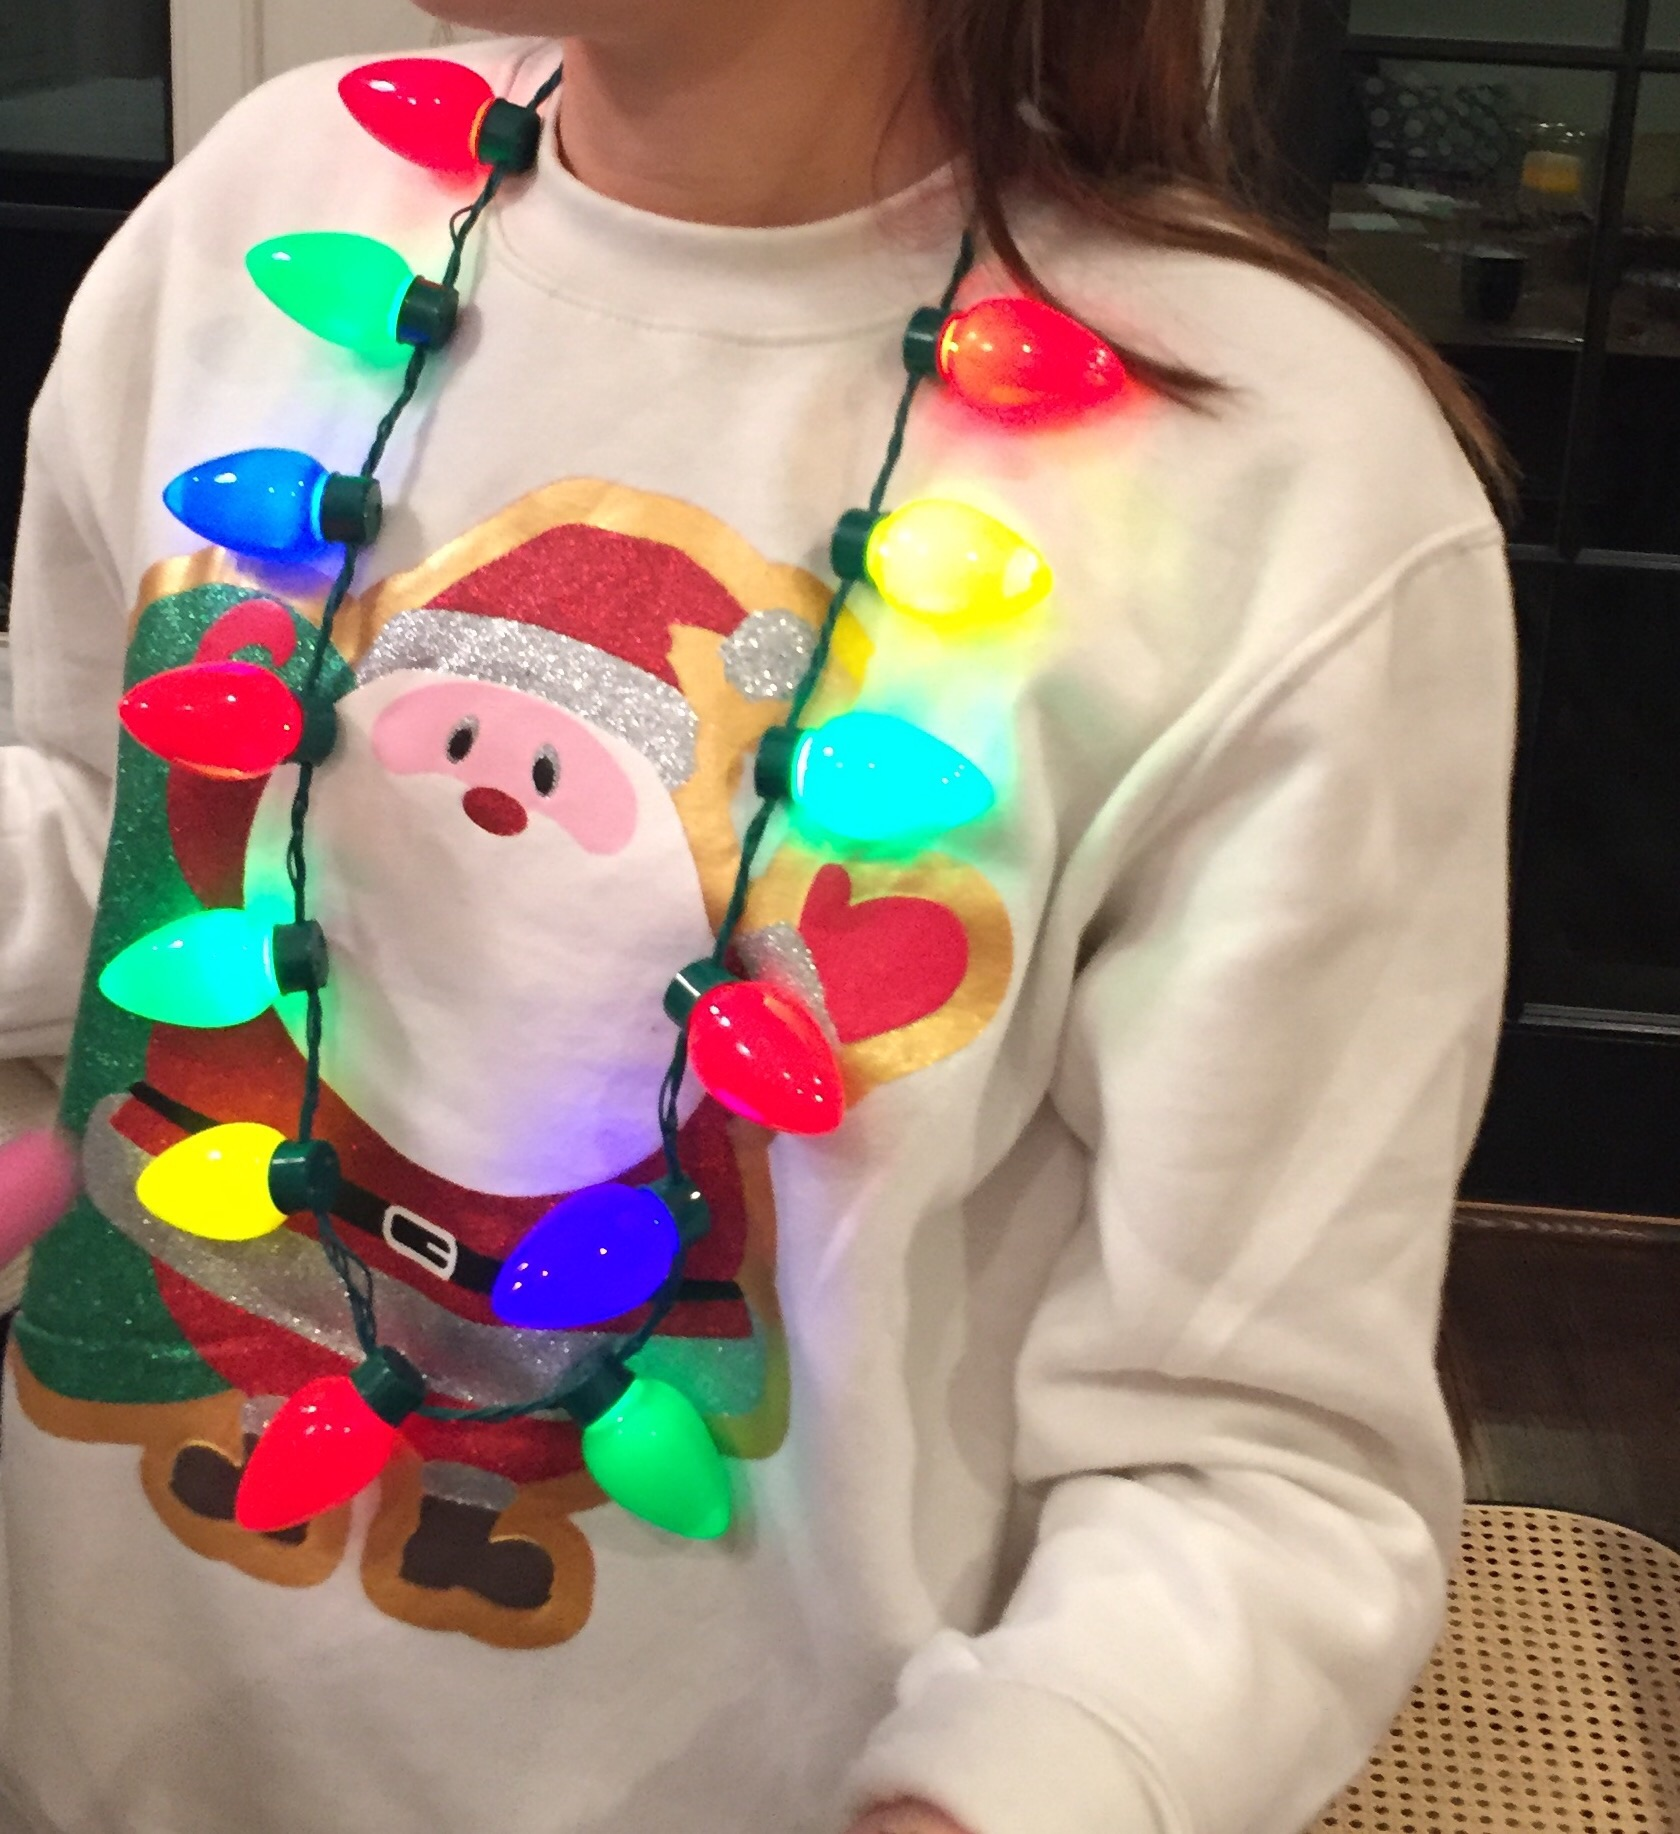 Speaking of lights... Check out Drew's necklace!